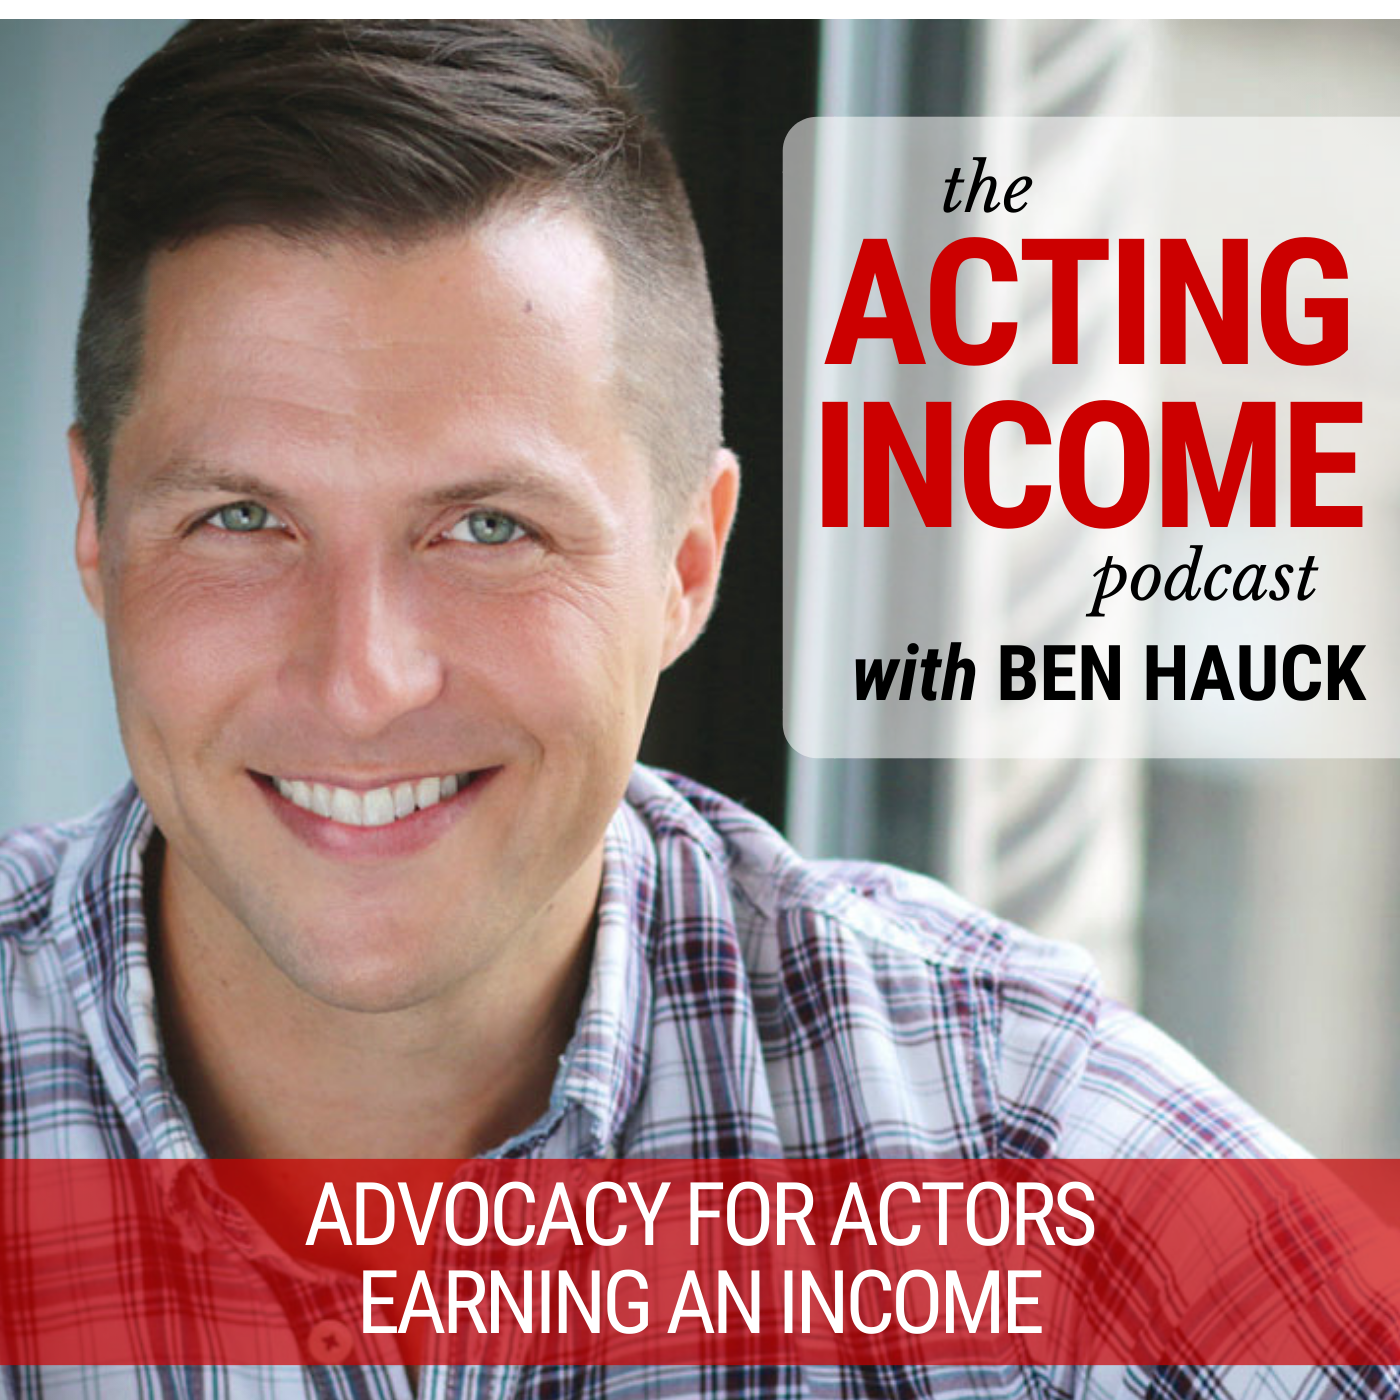 The Acting Income Podcast with Ben Hauck